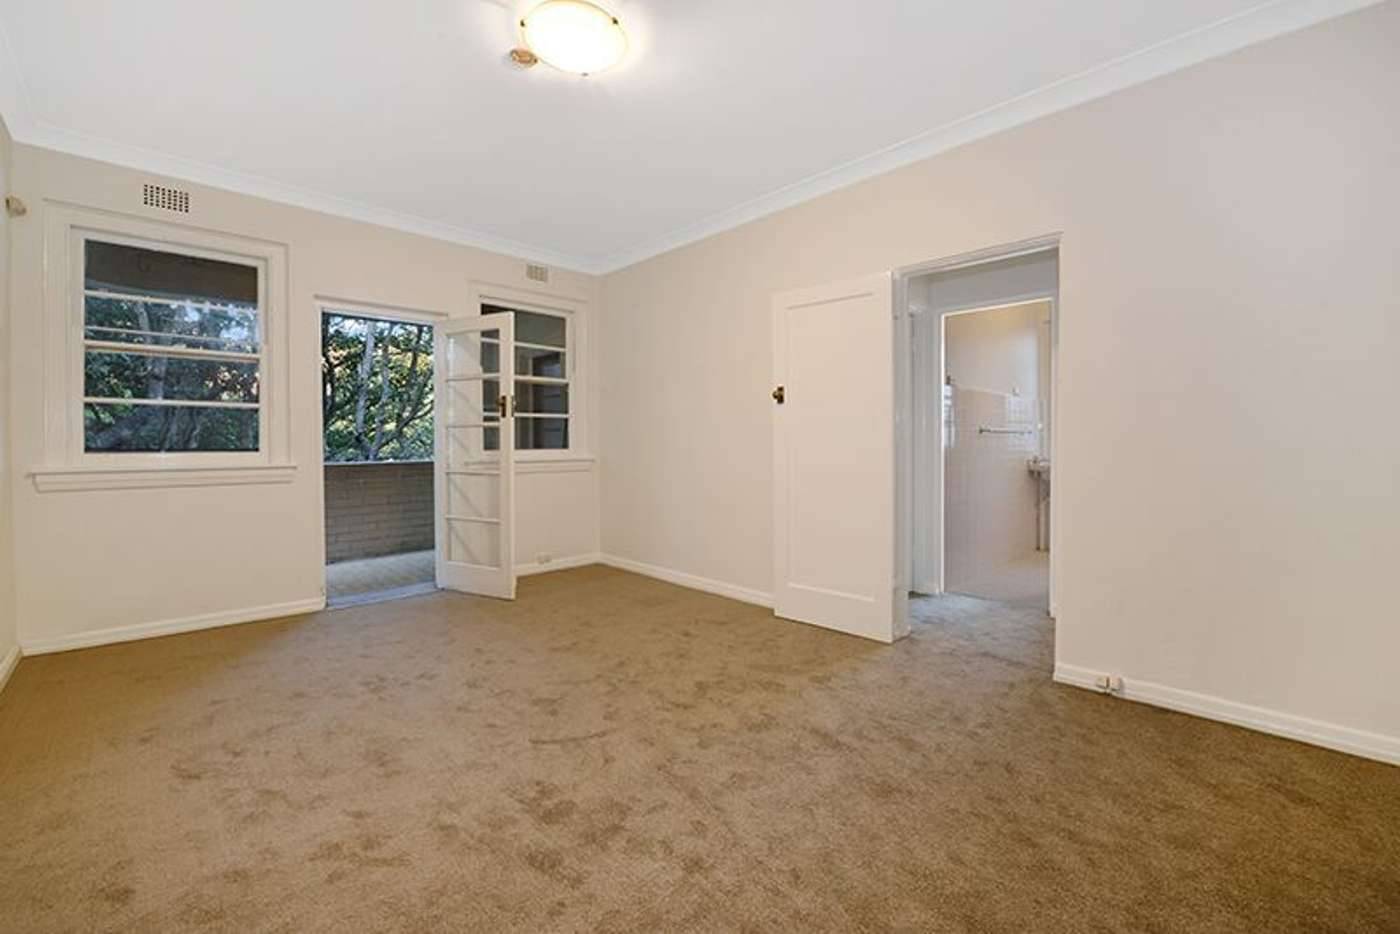 Main view of Homely apartment listing, 12/18 Kendall Street, Woollahra NSW 2025